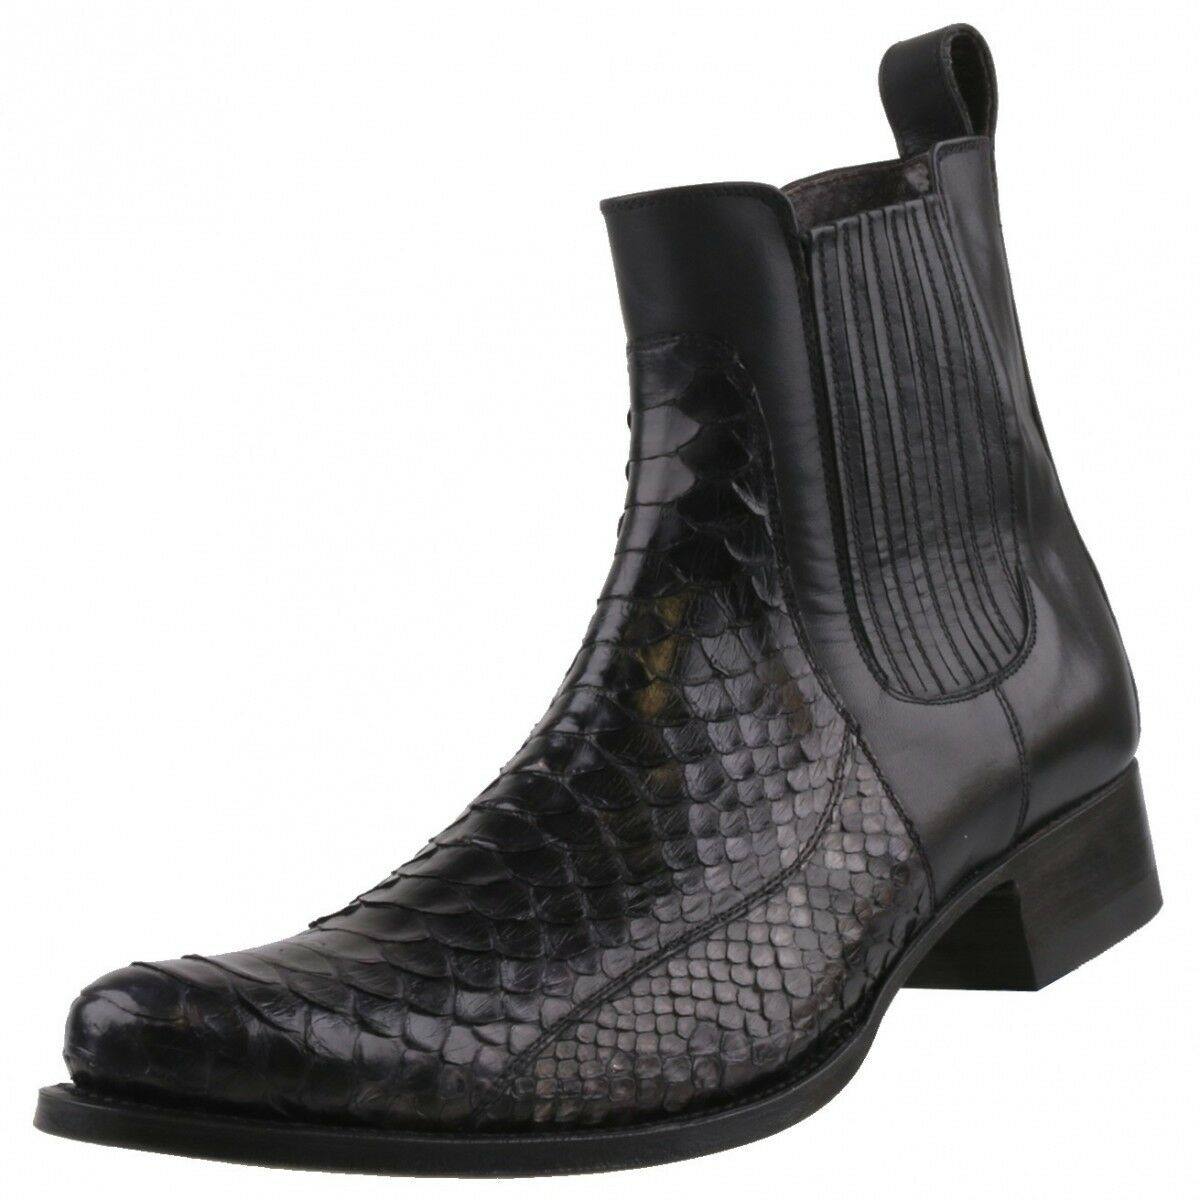 NEUF sendra bottes Chaussures Hommes Chaussures 10855 Bottines python Cuir Chaussures Bottes